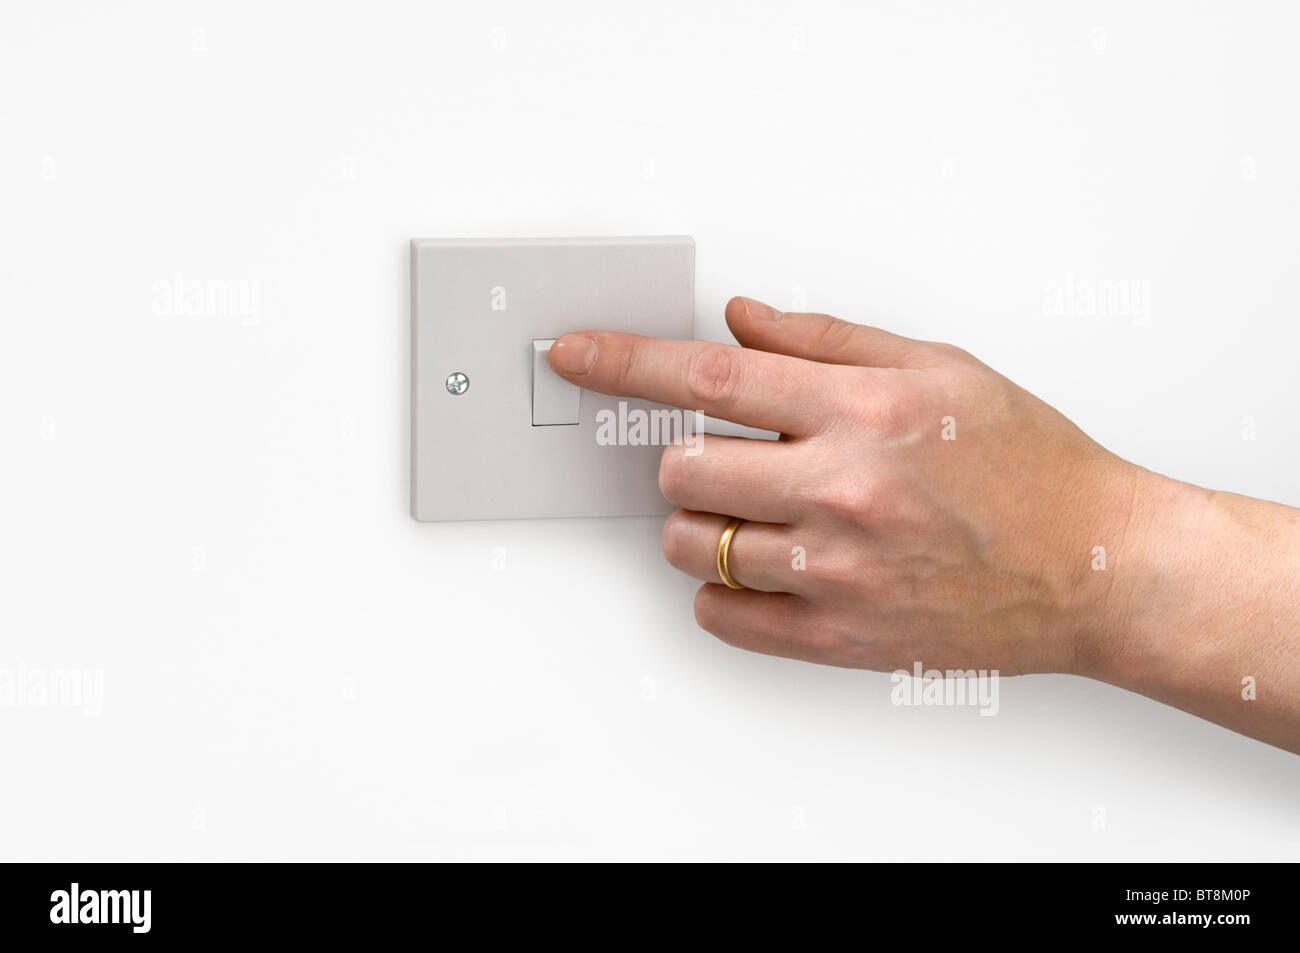 A hand operating a light switch. - Stock Image